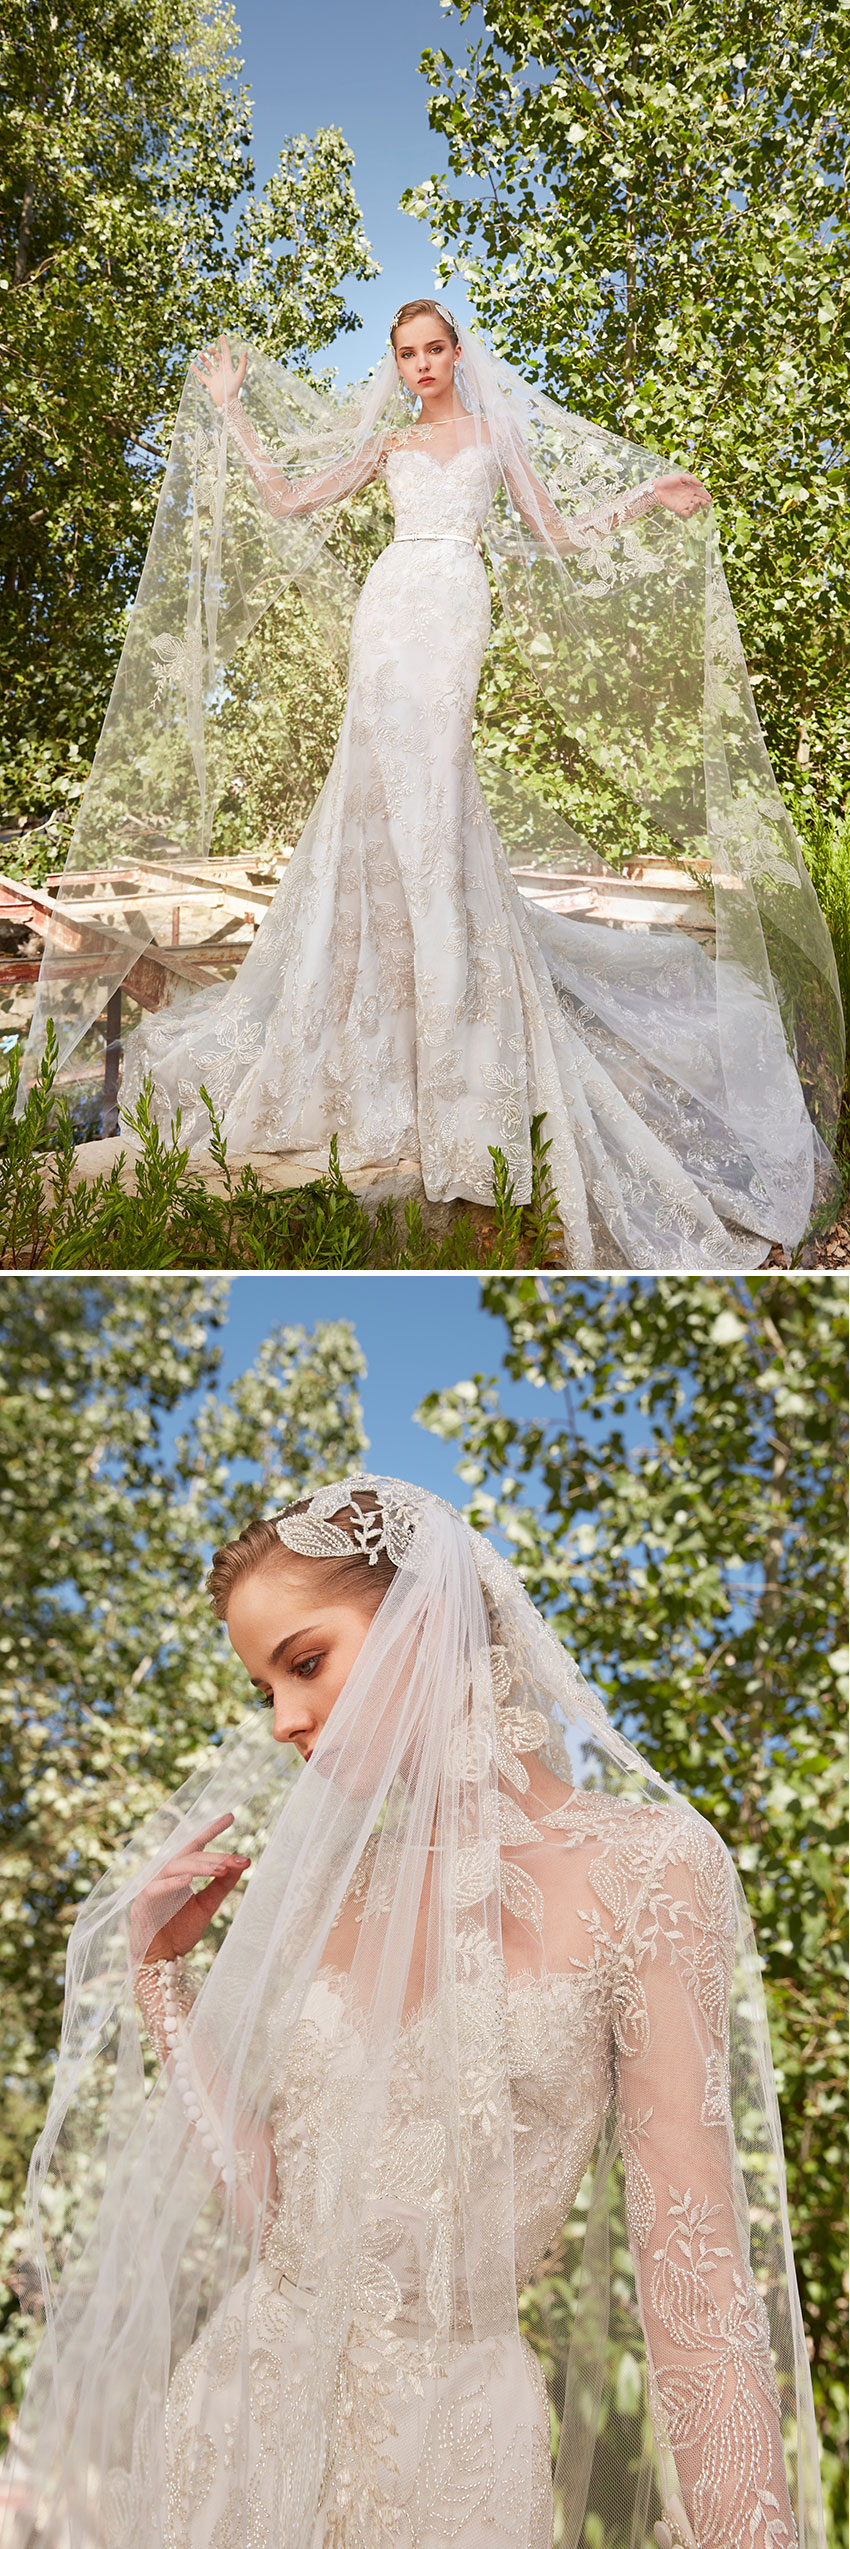 The signature ELIE SAAB Spring 2021 bridal collection white belt and cinched waistlines add a final touch, accentuating the beauty of feminine nature featured in Perfect Wedding Magazine